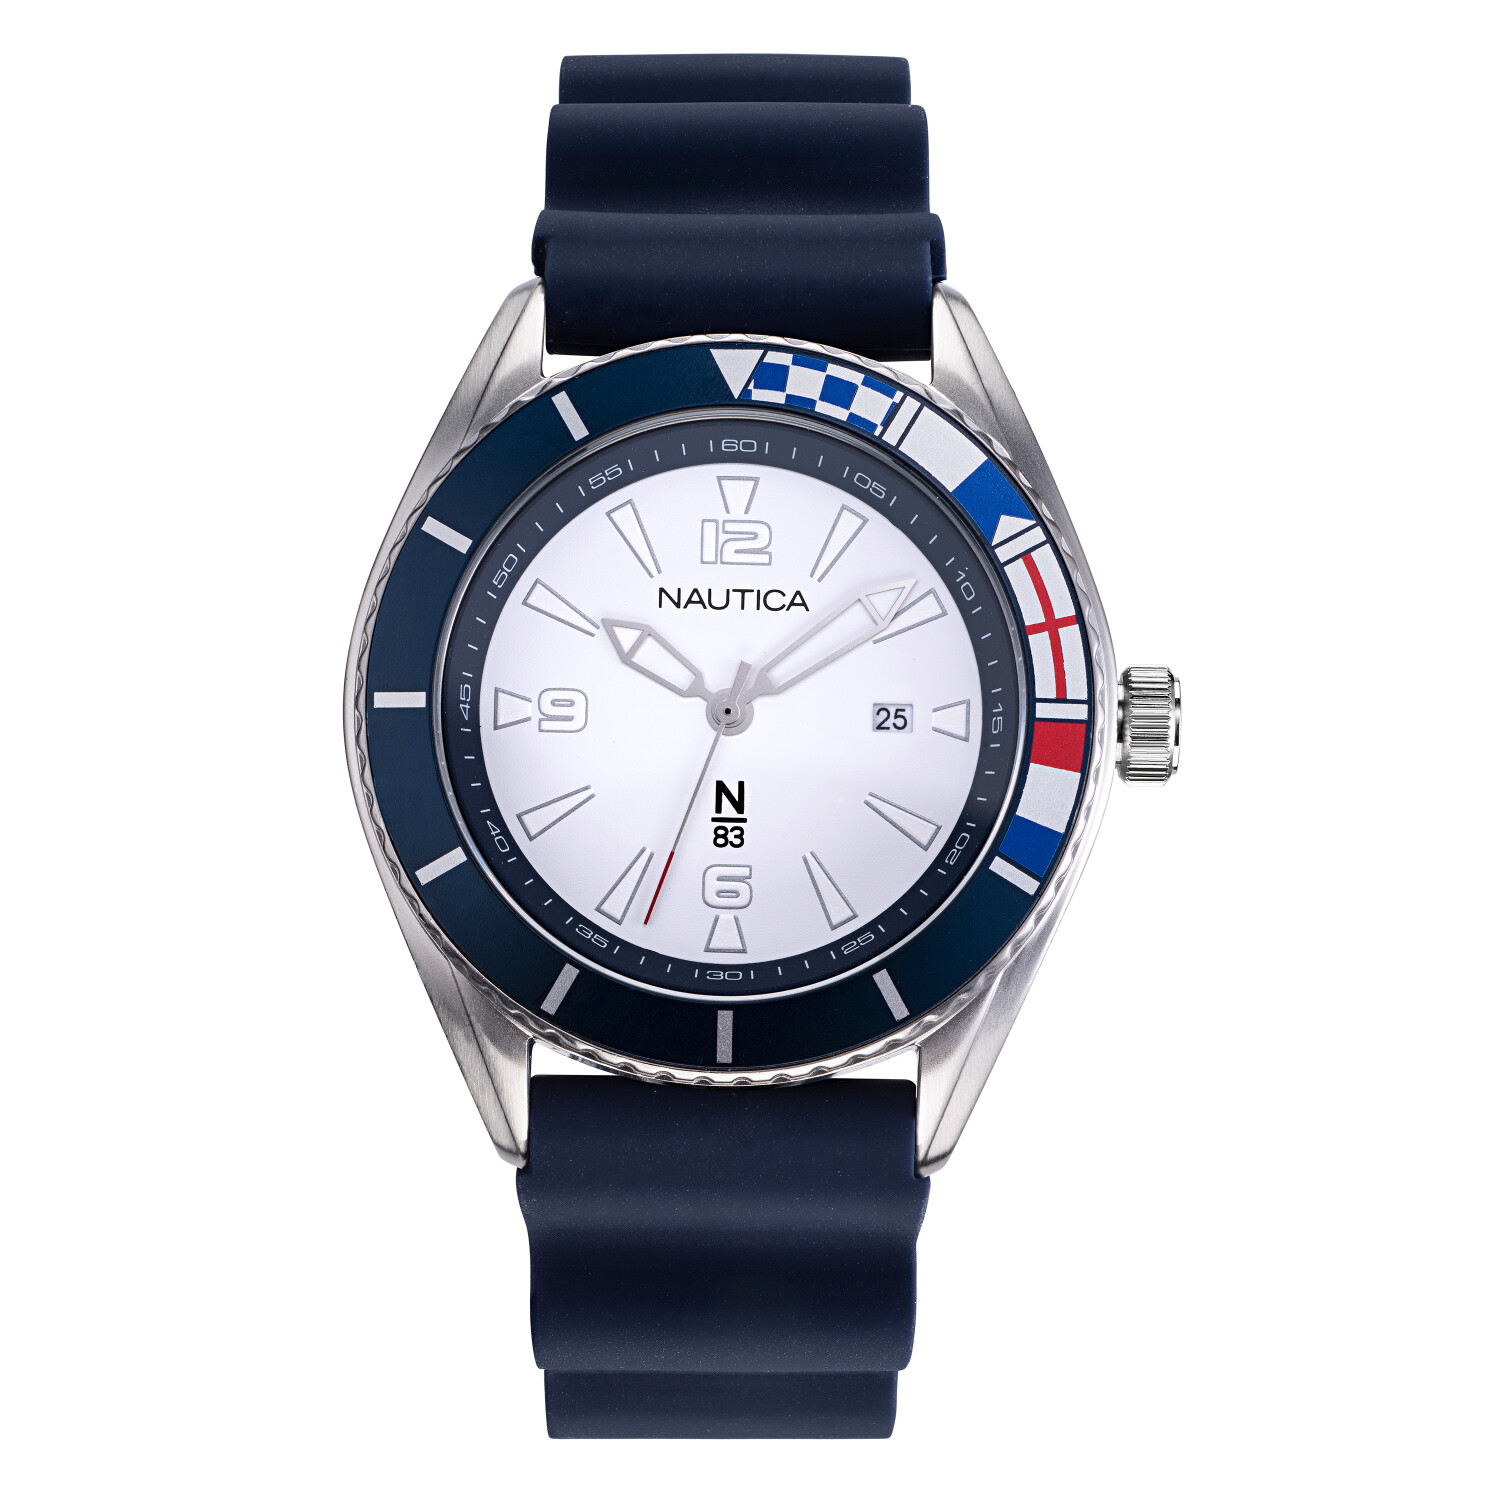 Nautica Watch NAPUSS903 Urban Surf, Analog, Water Resistant, Silicone Strap, Buckle Clasp, White